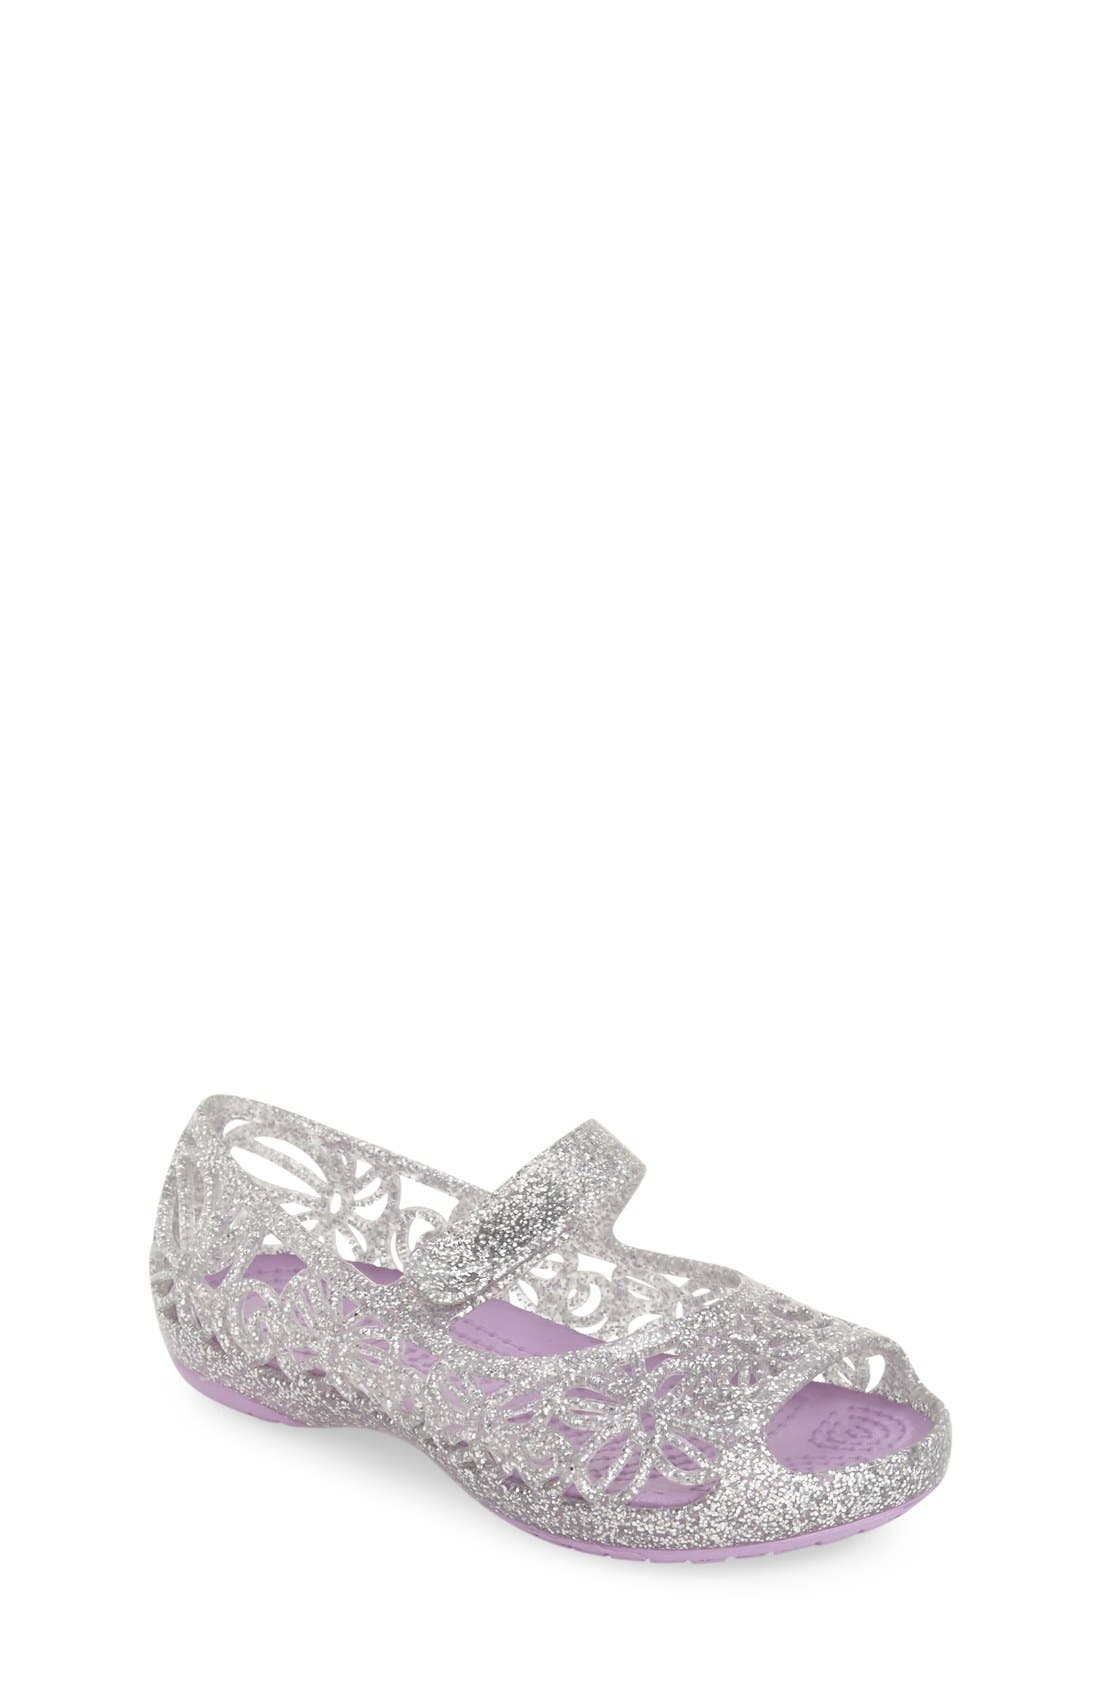 CROCS™ 'Isabella' Jelly Flat (Walker, Toddler, Little Kid & Big Kid)